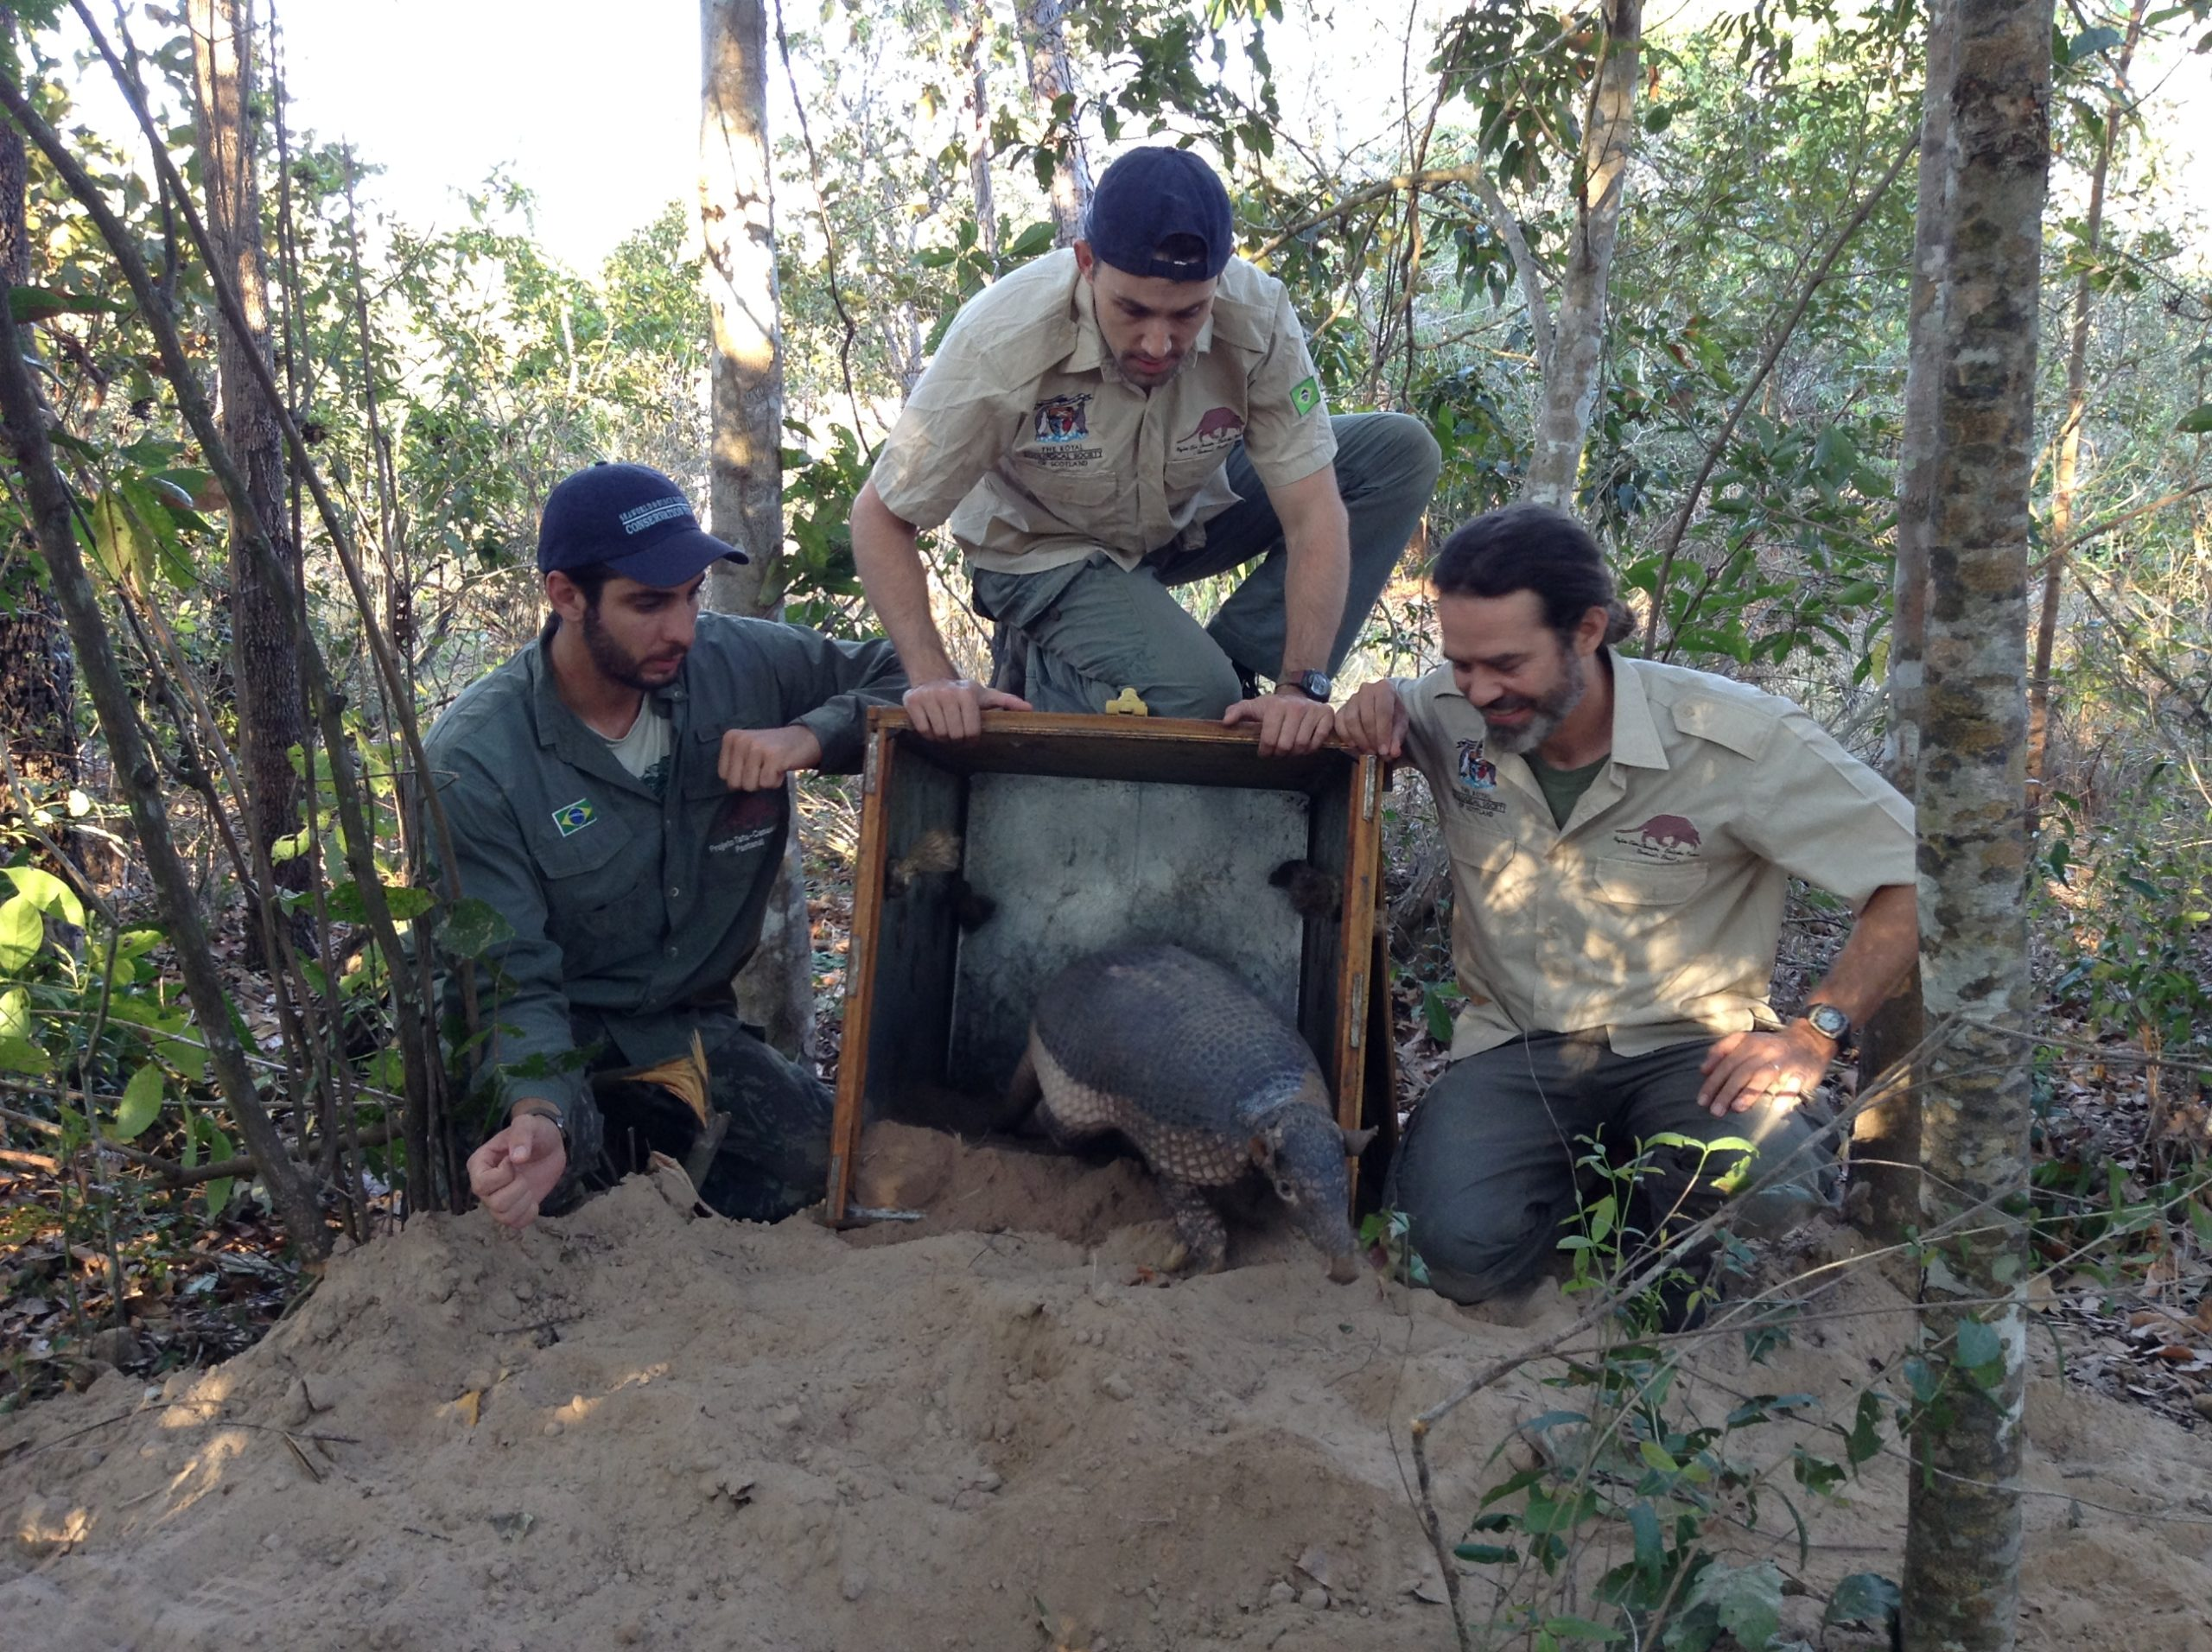 Arnaud Desbiez, right, and fellow team members reintroduce a giant armadillo into nature. Image courtesy of the Giant Armadillo Project.